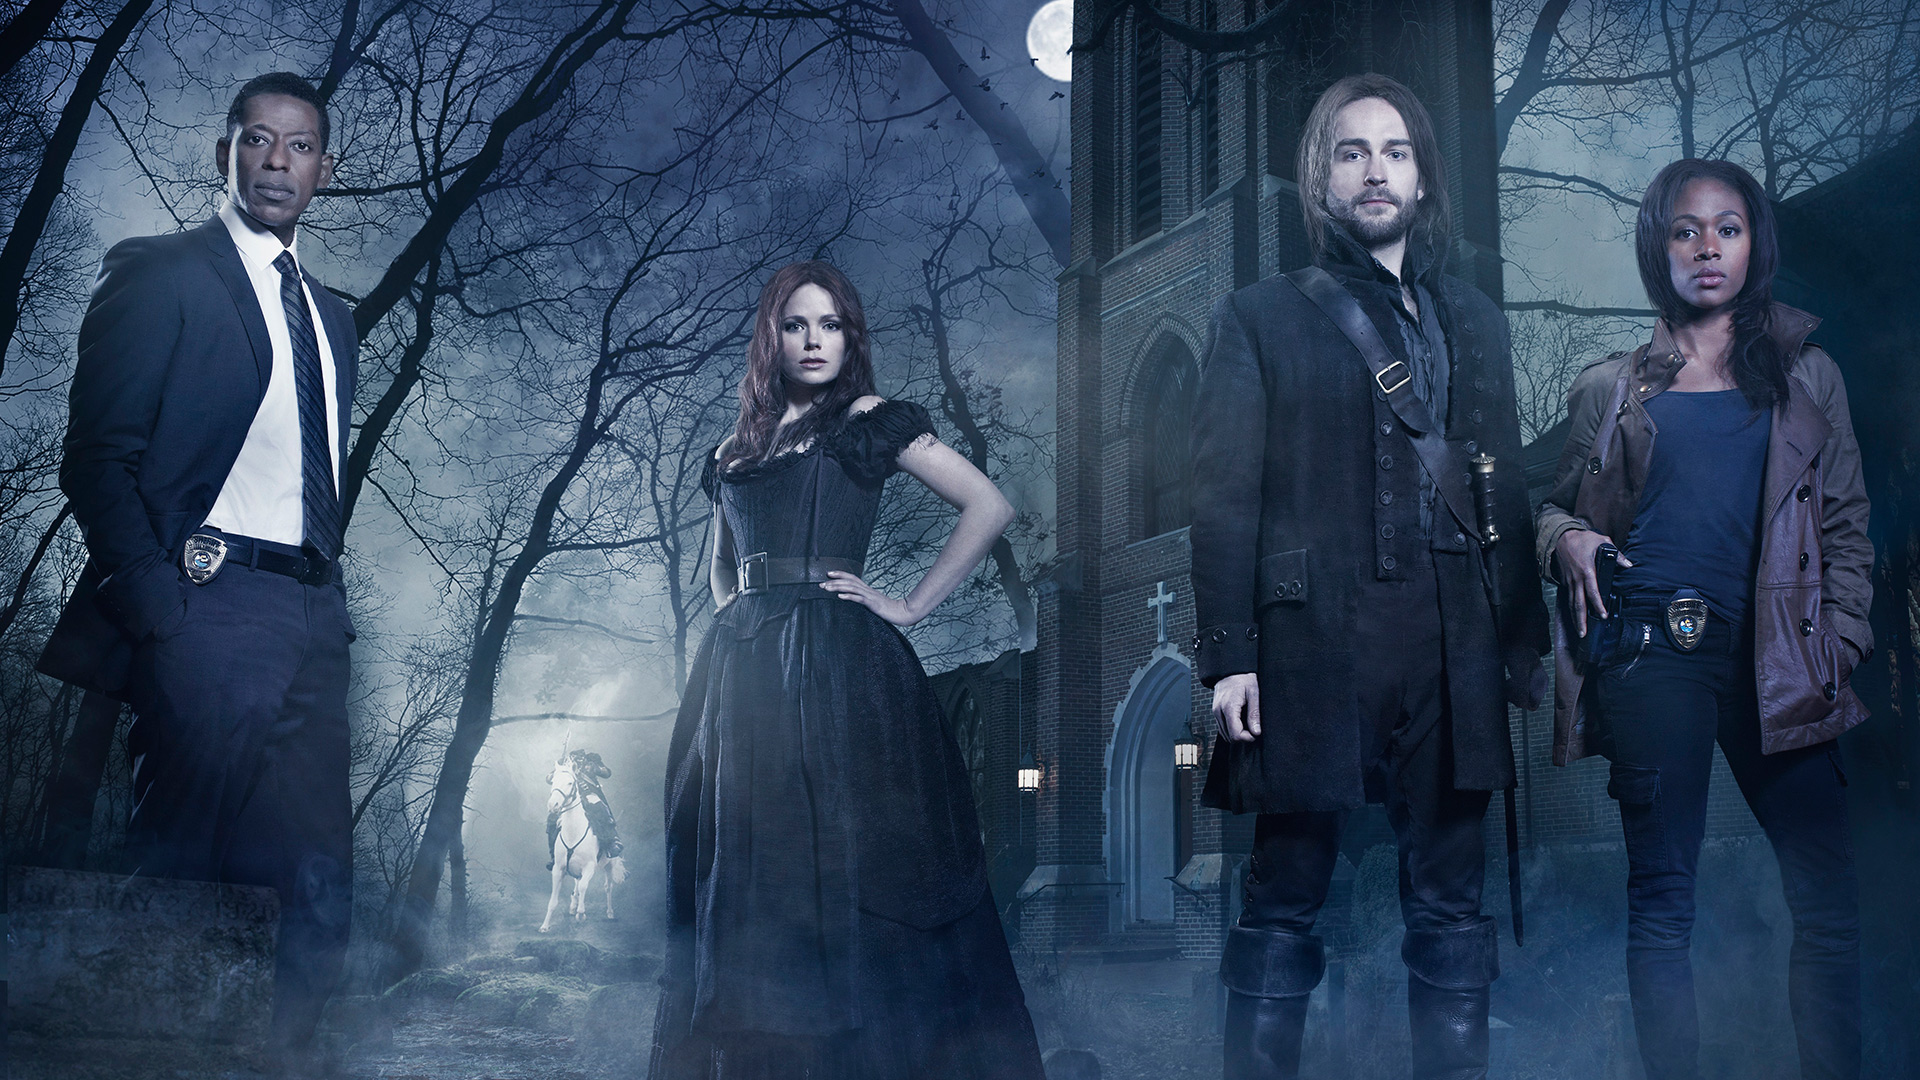 """SLEEPY HOLLOW: From co-creators/executive producers Alex Kurtzman and Roberto Orci comes the adventure thriller """"Sleepy Hollow."""" In this modern-day retelling of Washington Irving's classic, Ichabod Crane (Tom Mison, third from L) is resurrected and pulled two and a half centuries through time to find that the world is on the brink of destruction and that he is humanity's last hope, forcing him to team up with a contemporary police officer (Nicole Beharie, R) to unravel a mystery that dates back to the founding fathers. Also pictured (L-R): Orlando Jones and Katia Winter. Photo Credit: © 2013 Michael Lavine/Fox."""